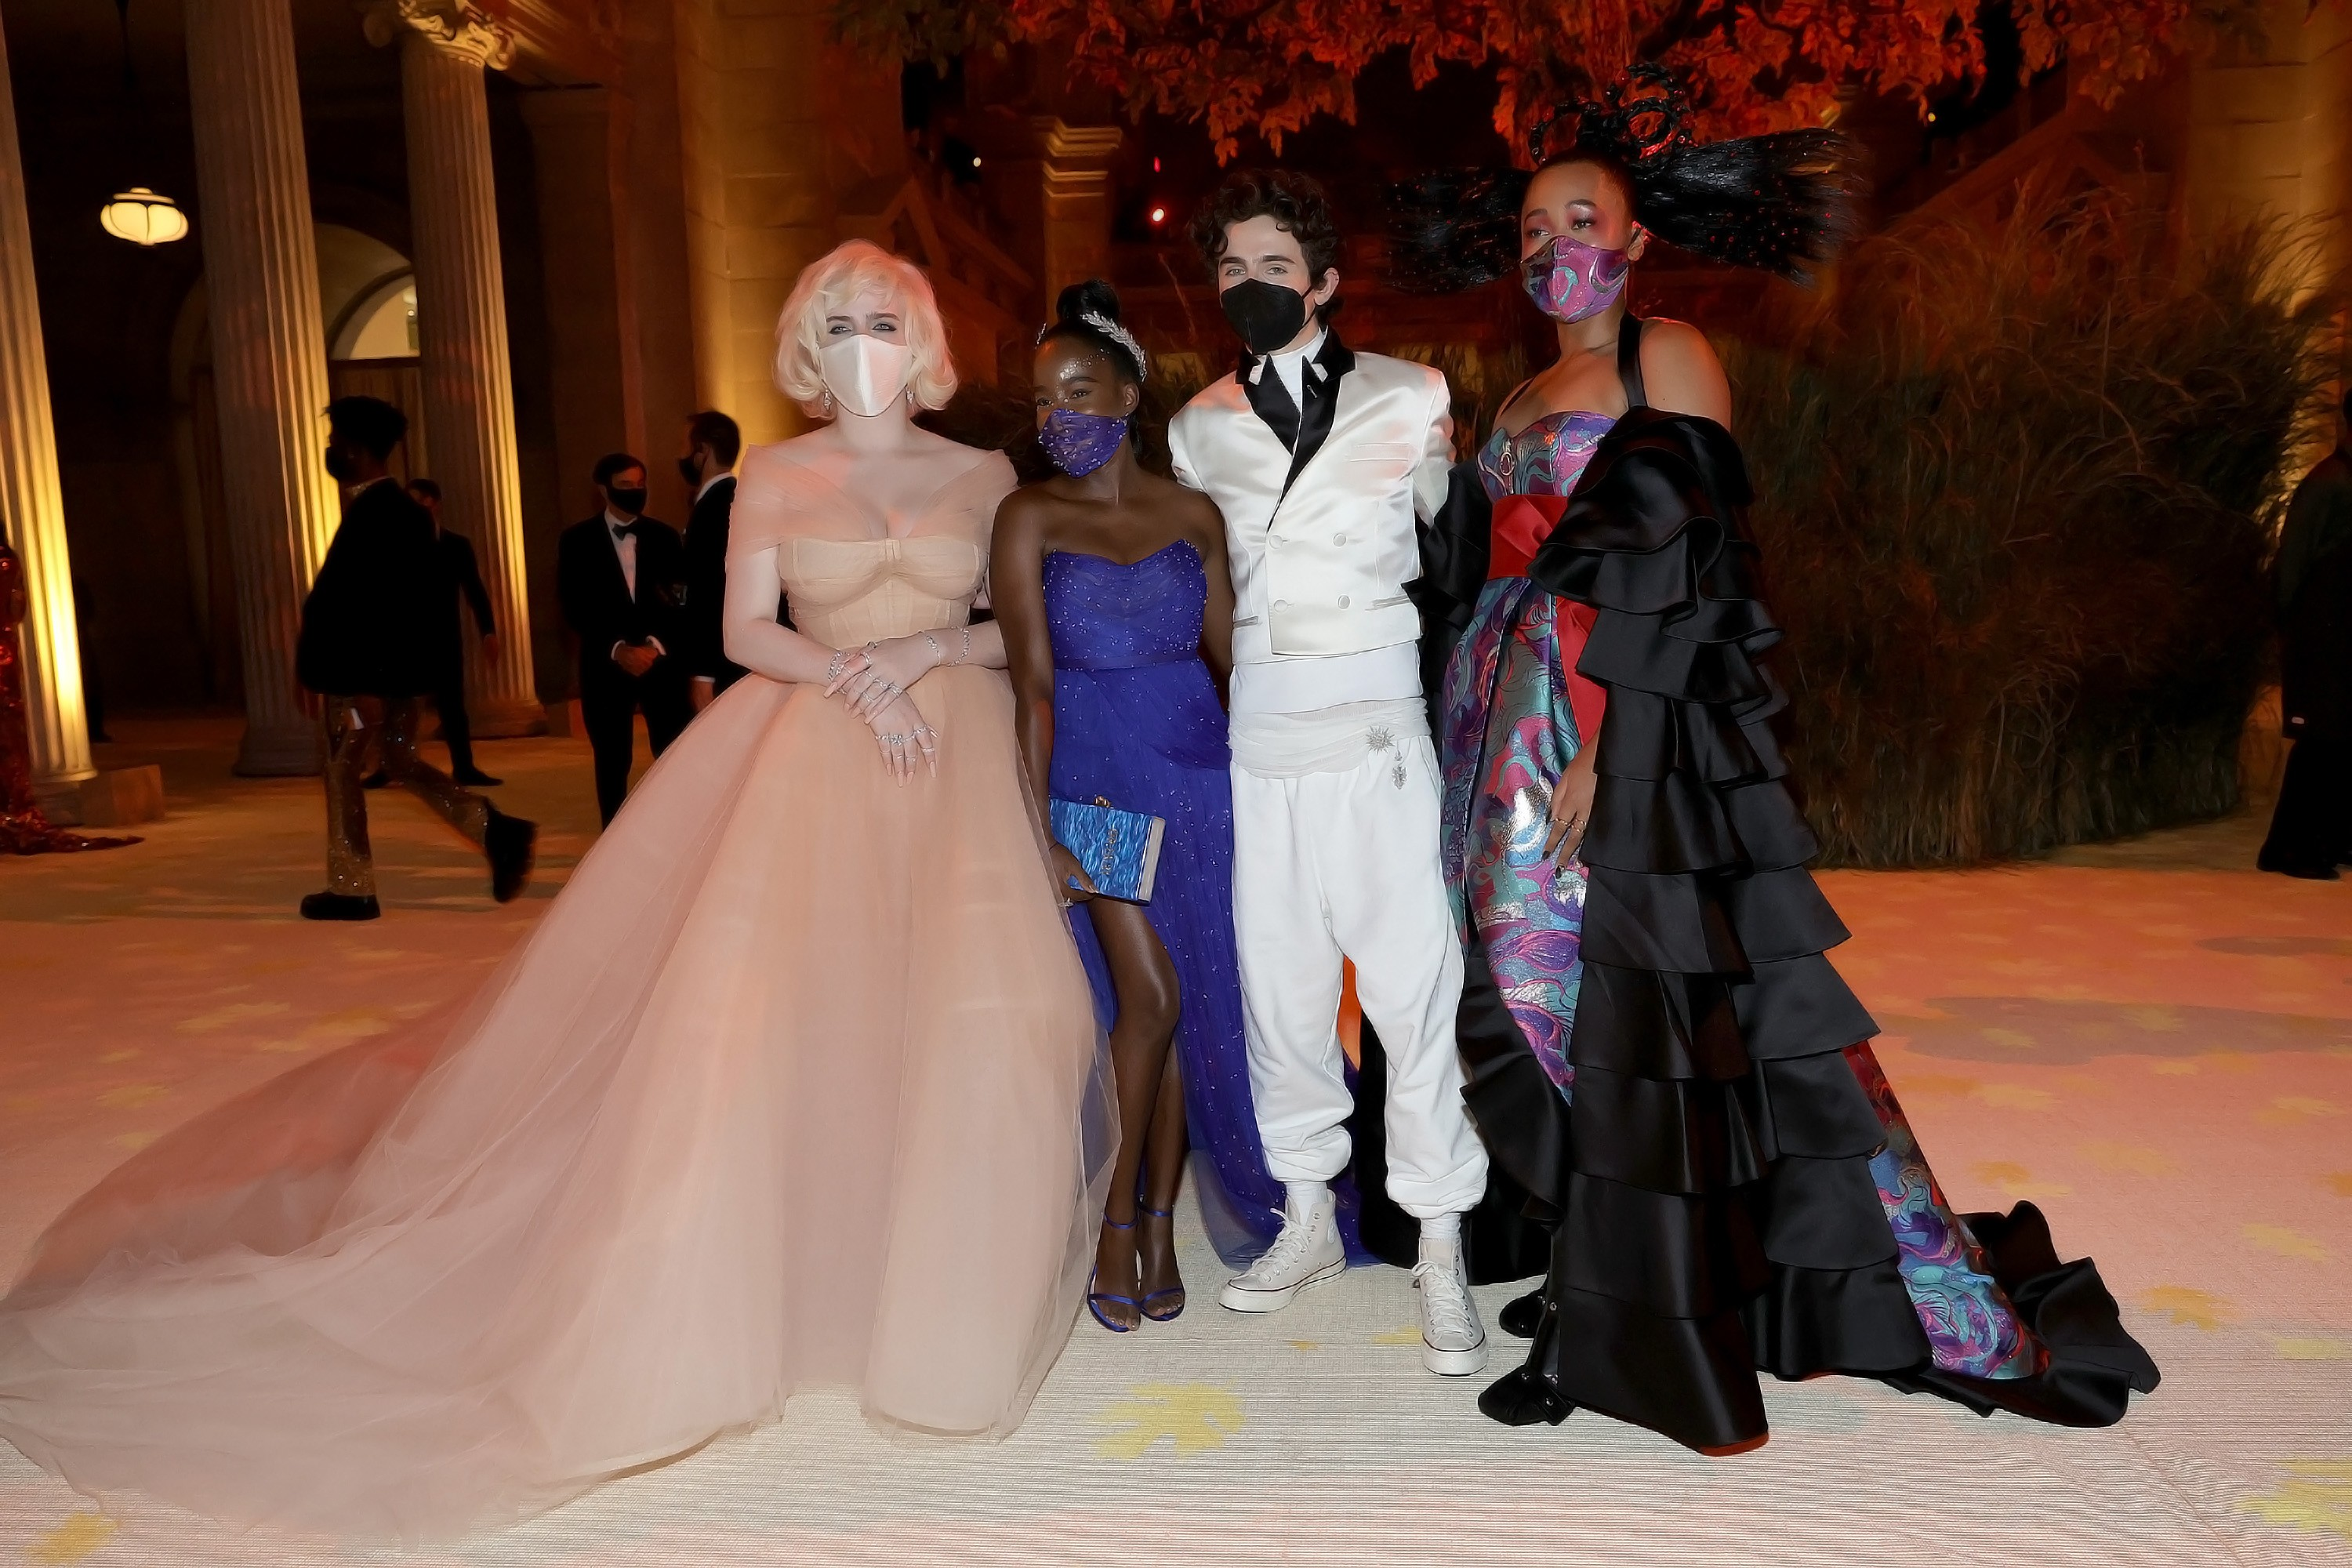 NEW YORK, NEW YORK - SEPTEMBER 13: (EXCLUSIVE COVERAGE) (L-R) Billie Eilish, Amanda Gorman, Timothée Chalamet, and Naomi Osaka attend the The 2021 Met Gala Celebrating In America: A Lexicon Of Fashion at Metropolitan Museum of Art on September 13, 2021 in (Foto: Getty Images for The Met Museum/)